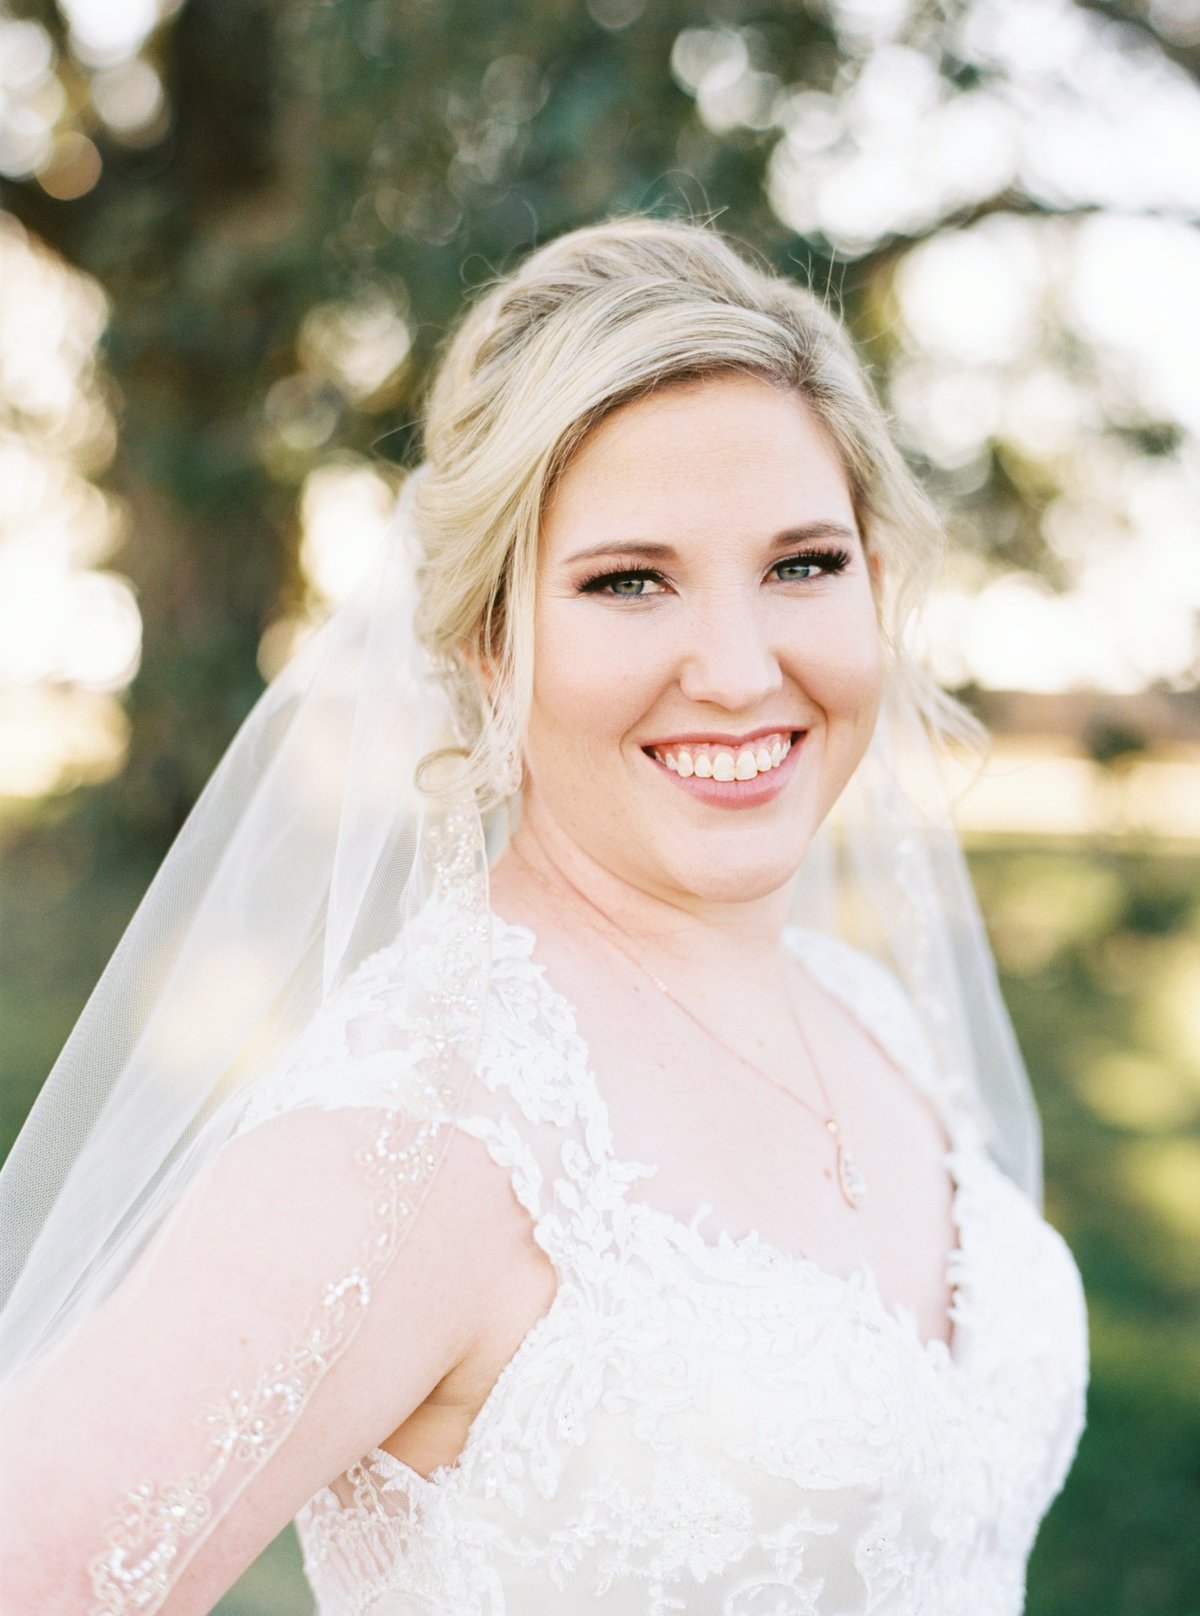 A beautiful bride at a farm house in Texas. This session was captured on film